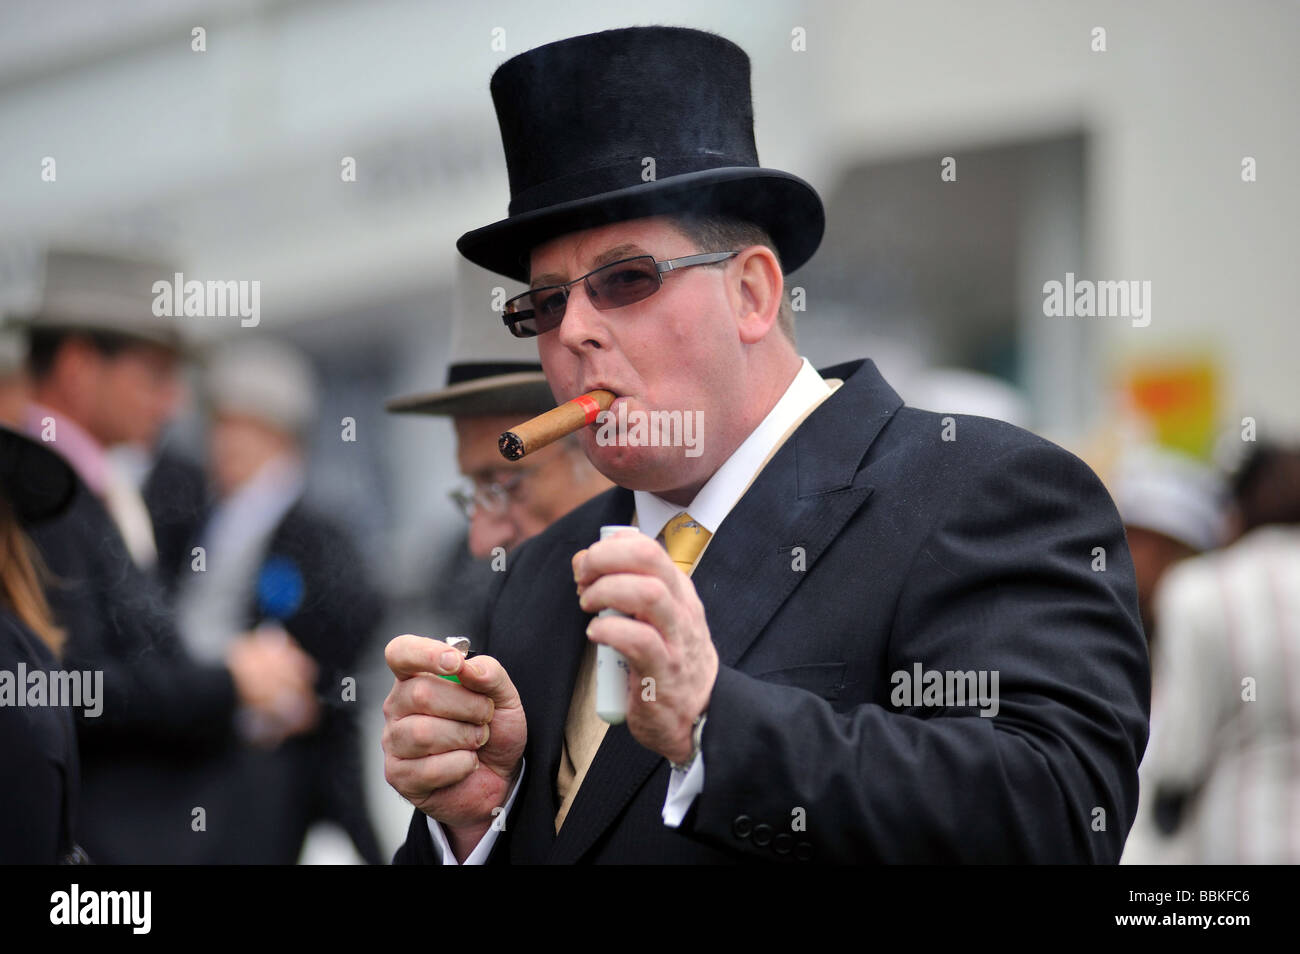 A Race Goer In A Top Hat Smoking A Large Cigar Derby Day